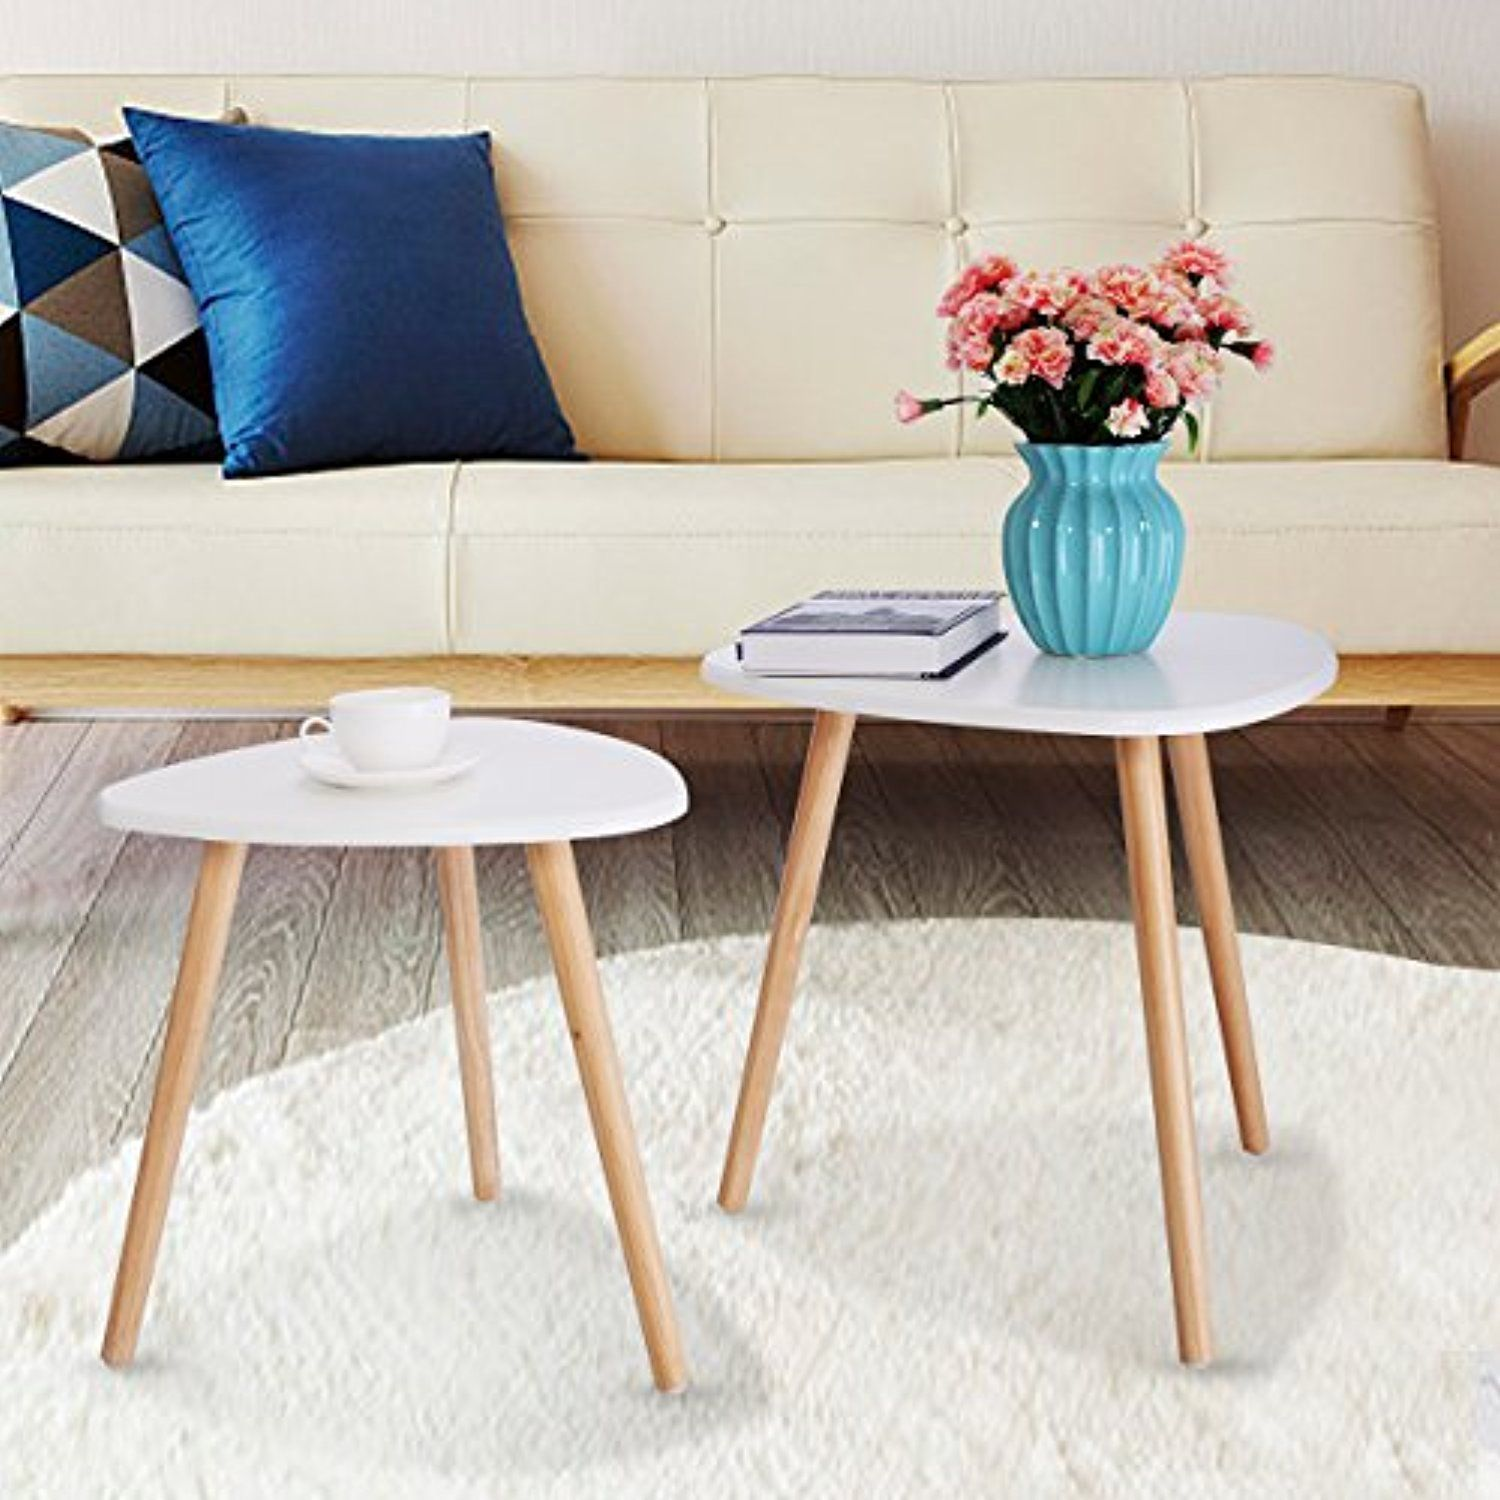 Jaxpety Set Of 2 Modern White Gloss Triangle Top Nesting Tables Living Room Side End Tables Nesting Tables Living Room Coffee And End Tables Living Room Table